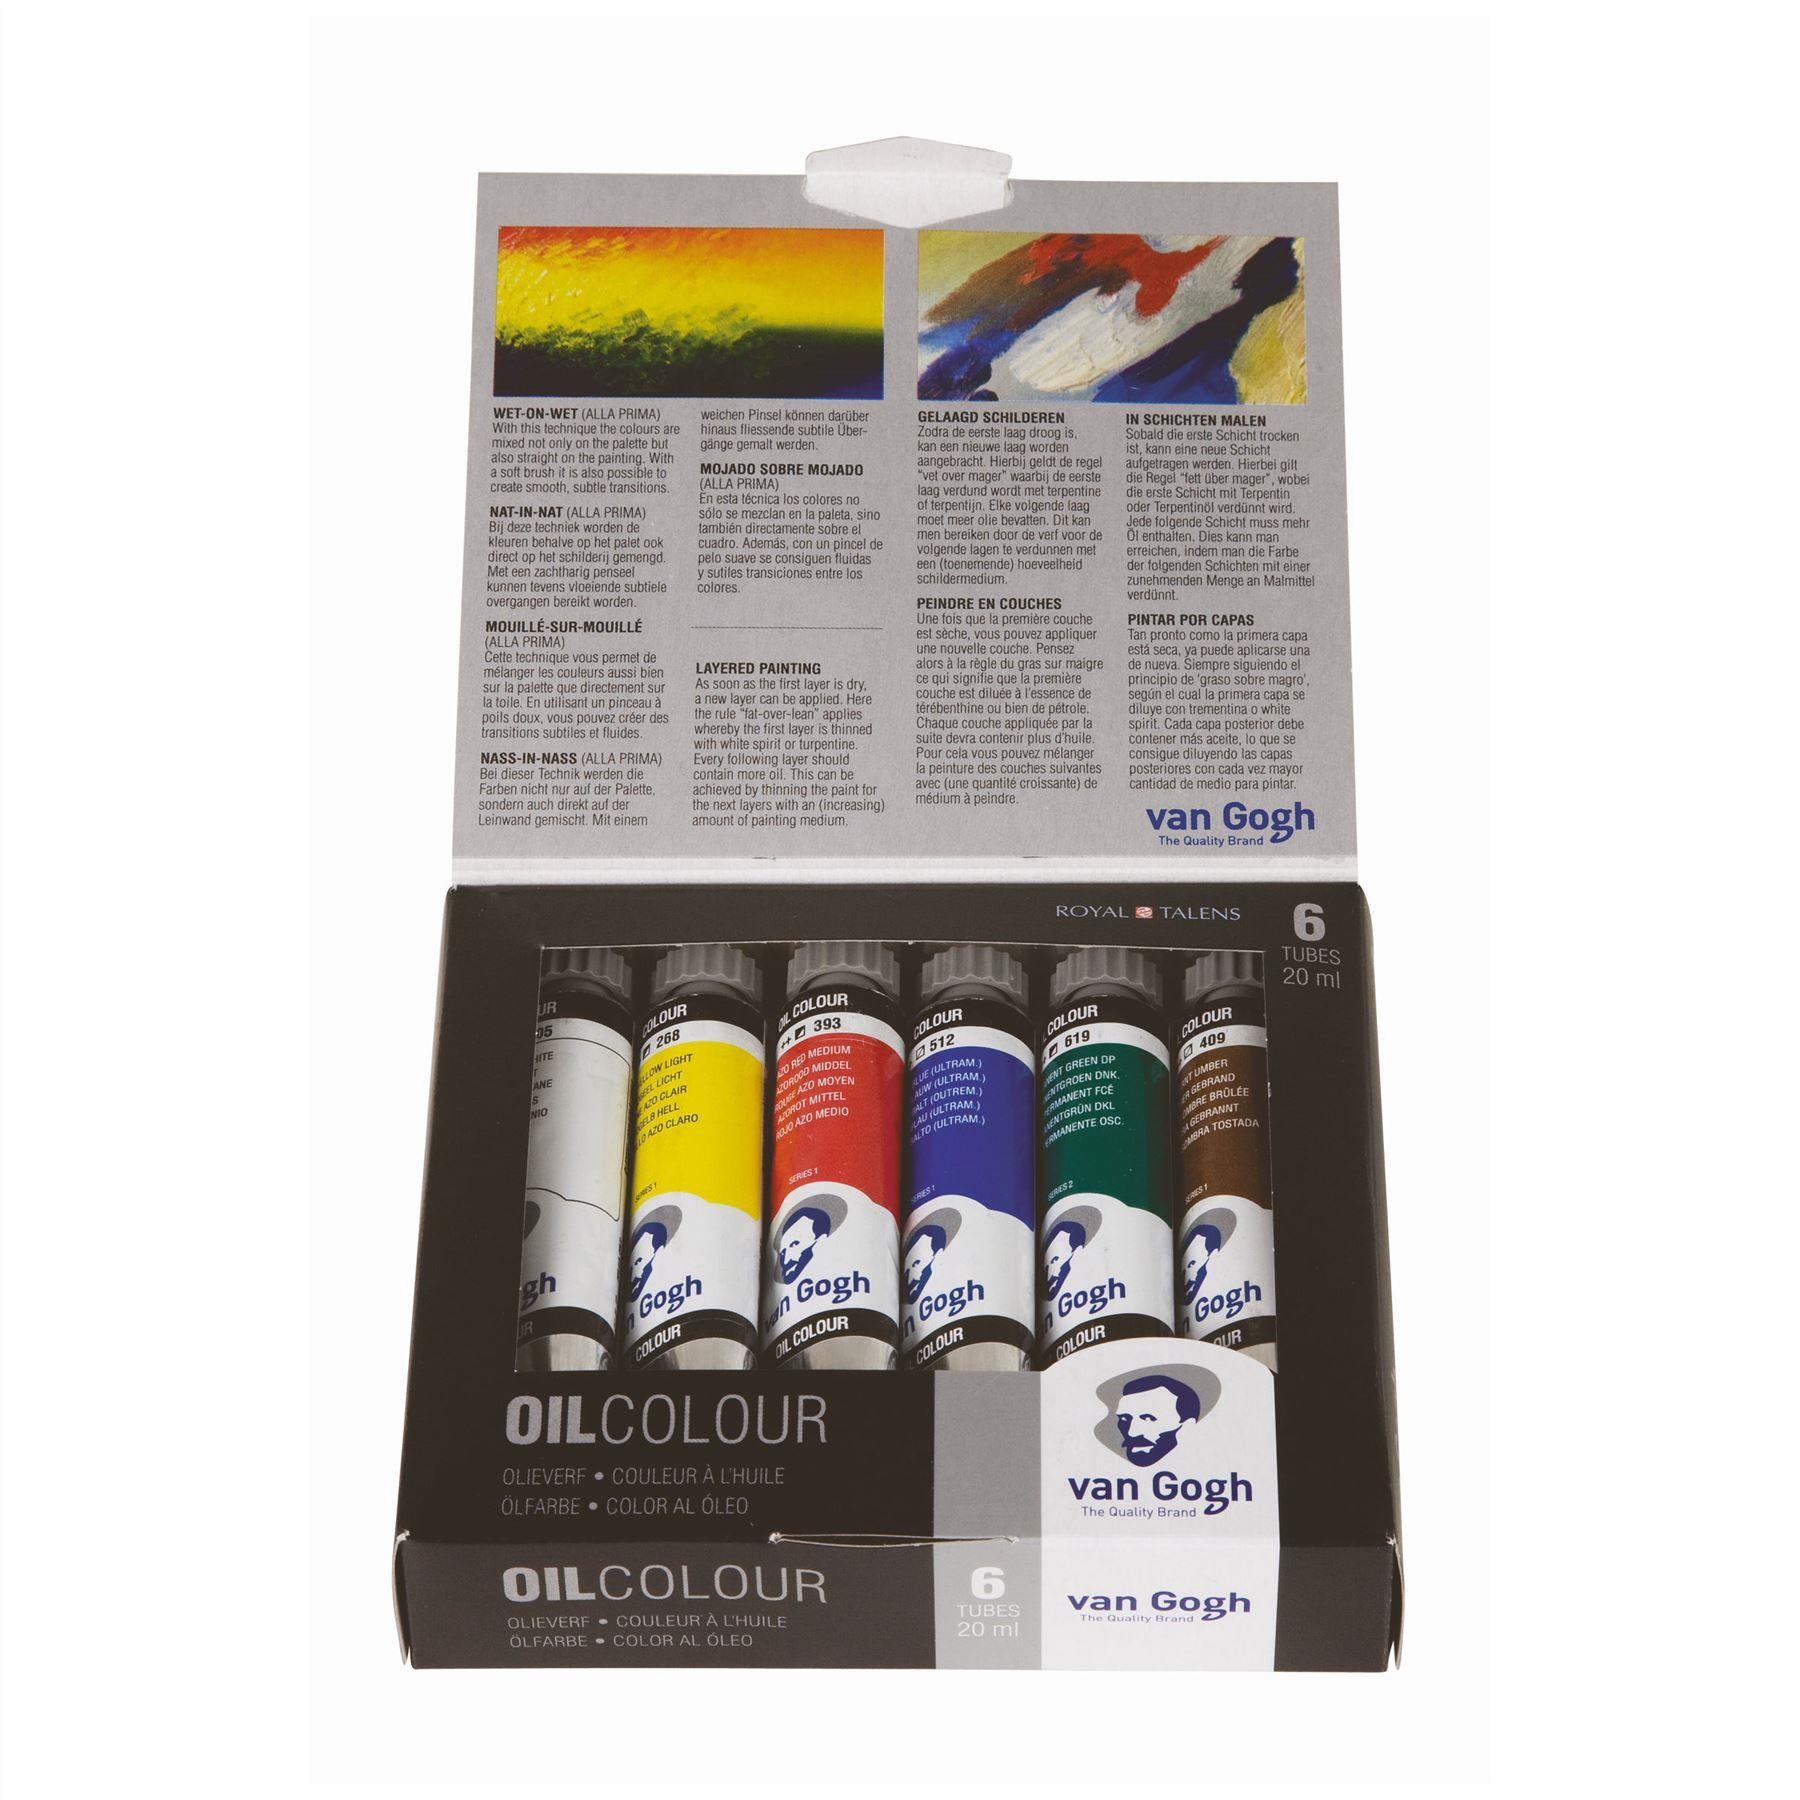 Royal Talens Van Gogh oil colour paints